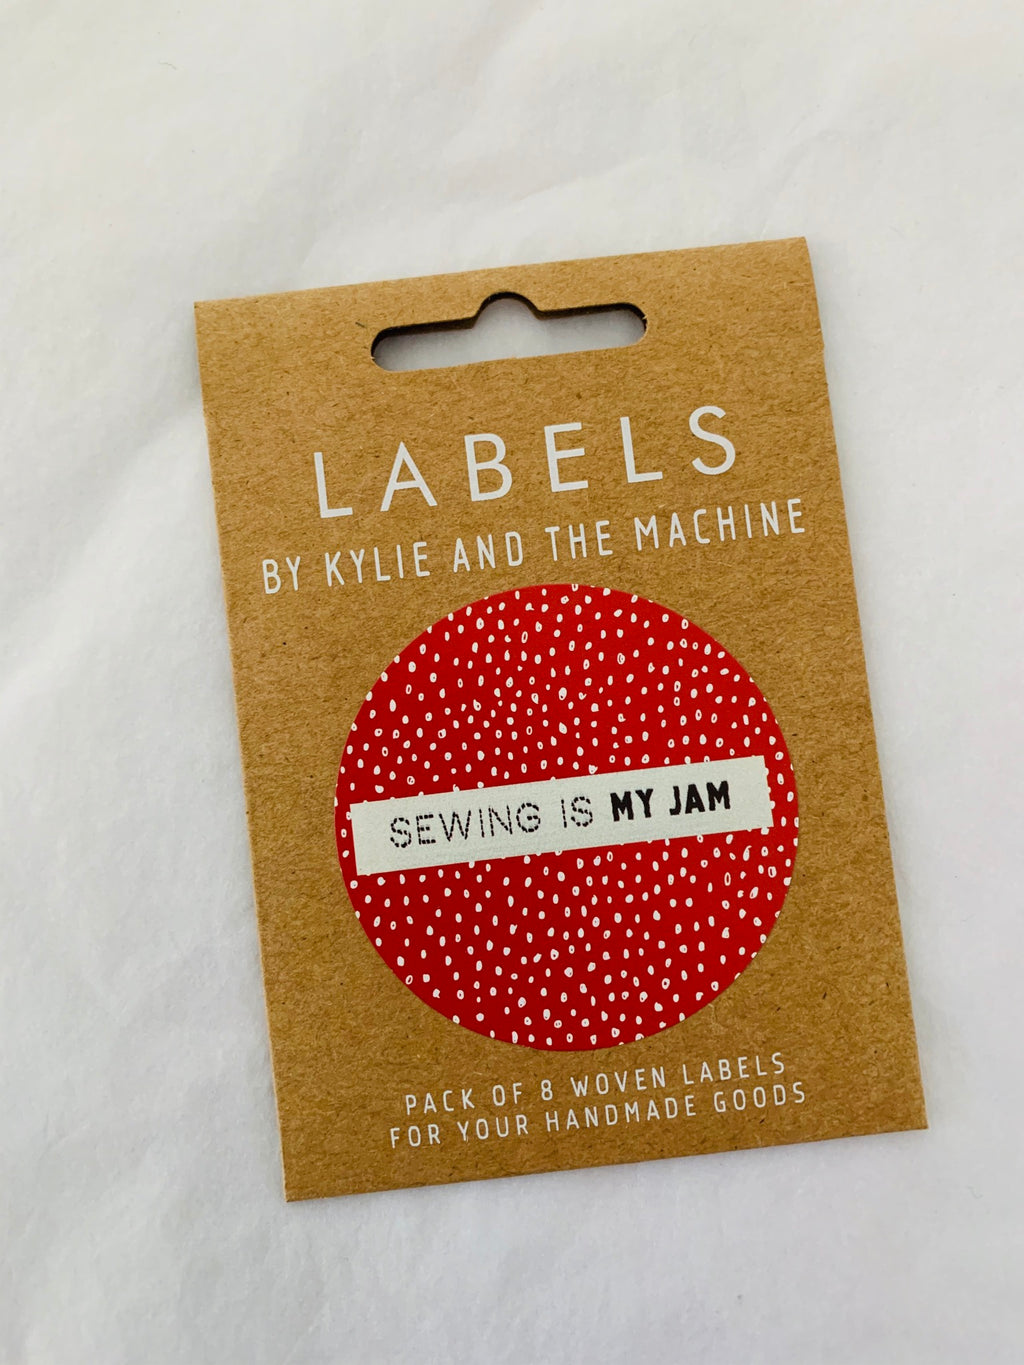 Kylie and the Machine: Sewing Is My Jam